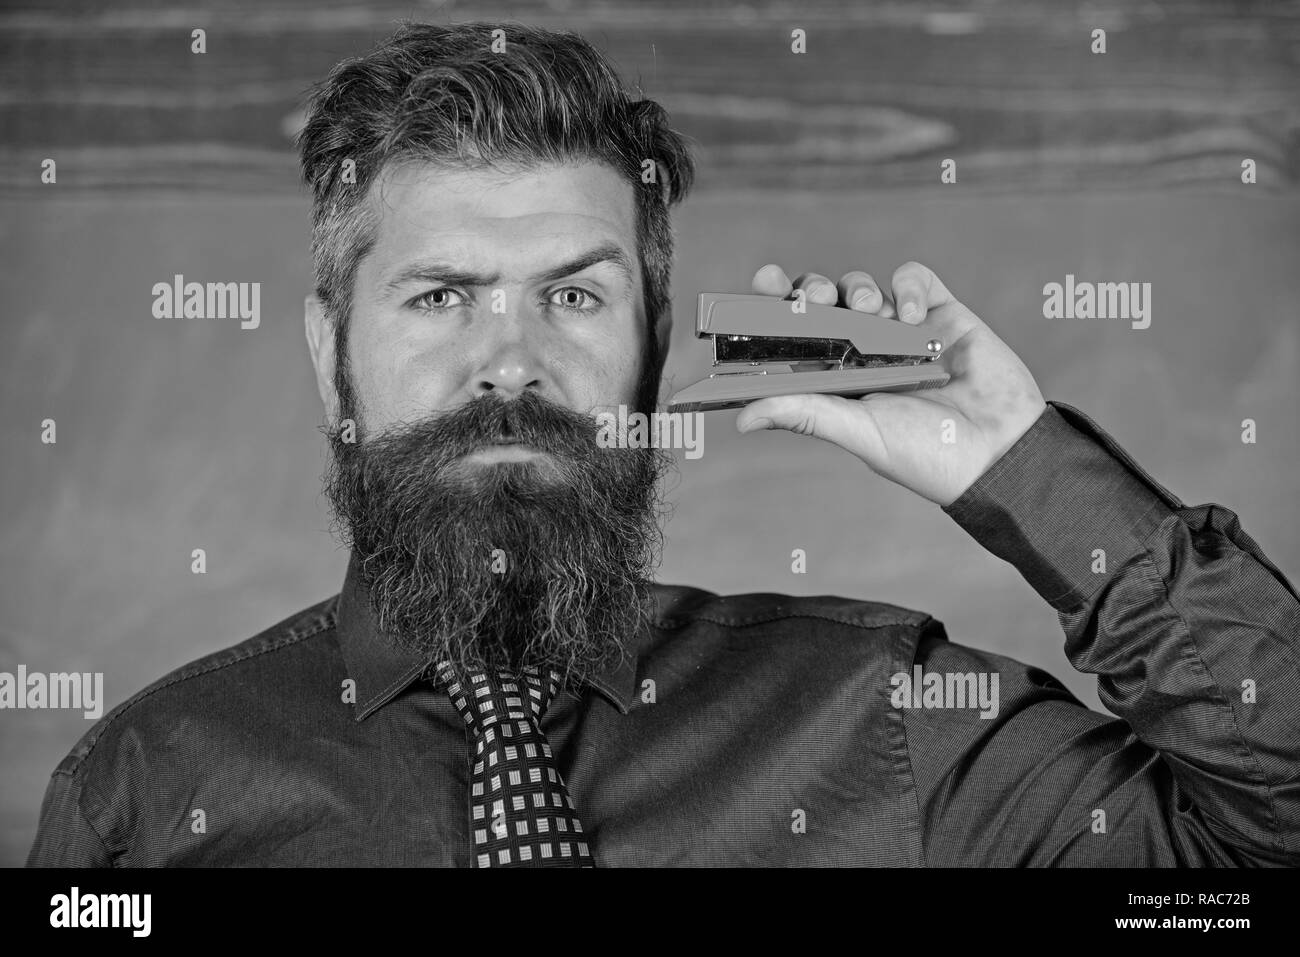 Teaching memorization techniques. Hipster teacher formal wear with neck tie holds stapler. Back to school and studying. Teacher bearded man with pink stapler chalkboard background. Pin it on mind. - Stock Image